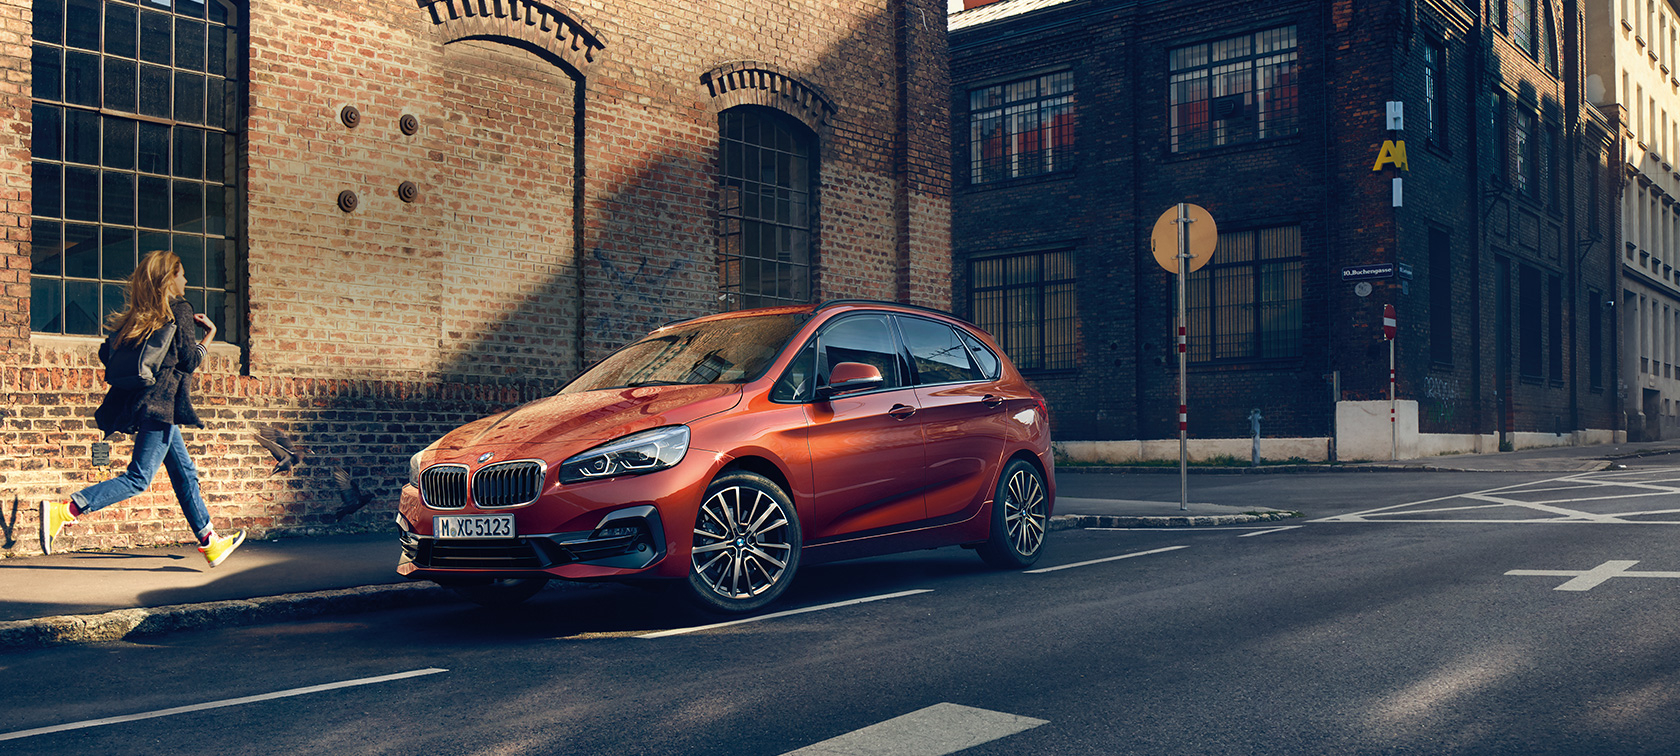 BMW 2 Series Active Tourer F45 Facelift 2018 Sunset Orange metallic three-quarter front view parking on the road